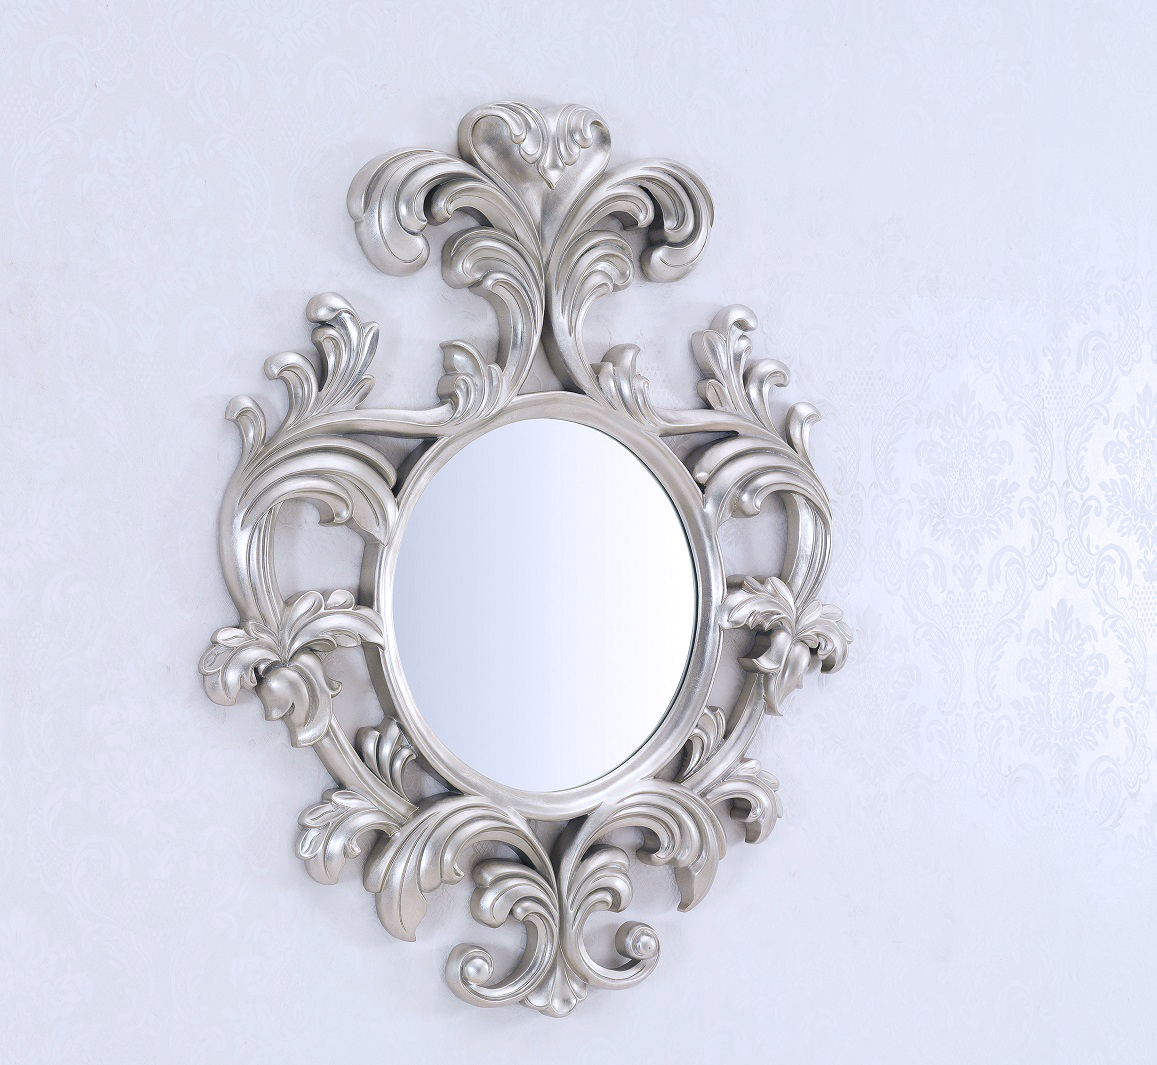 Decorative Mirror Decorative Wall Mirror Large Wall Mirror Geneve Silver